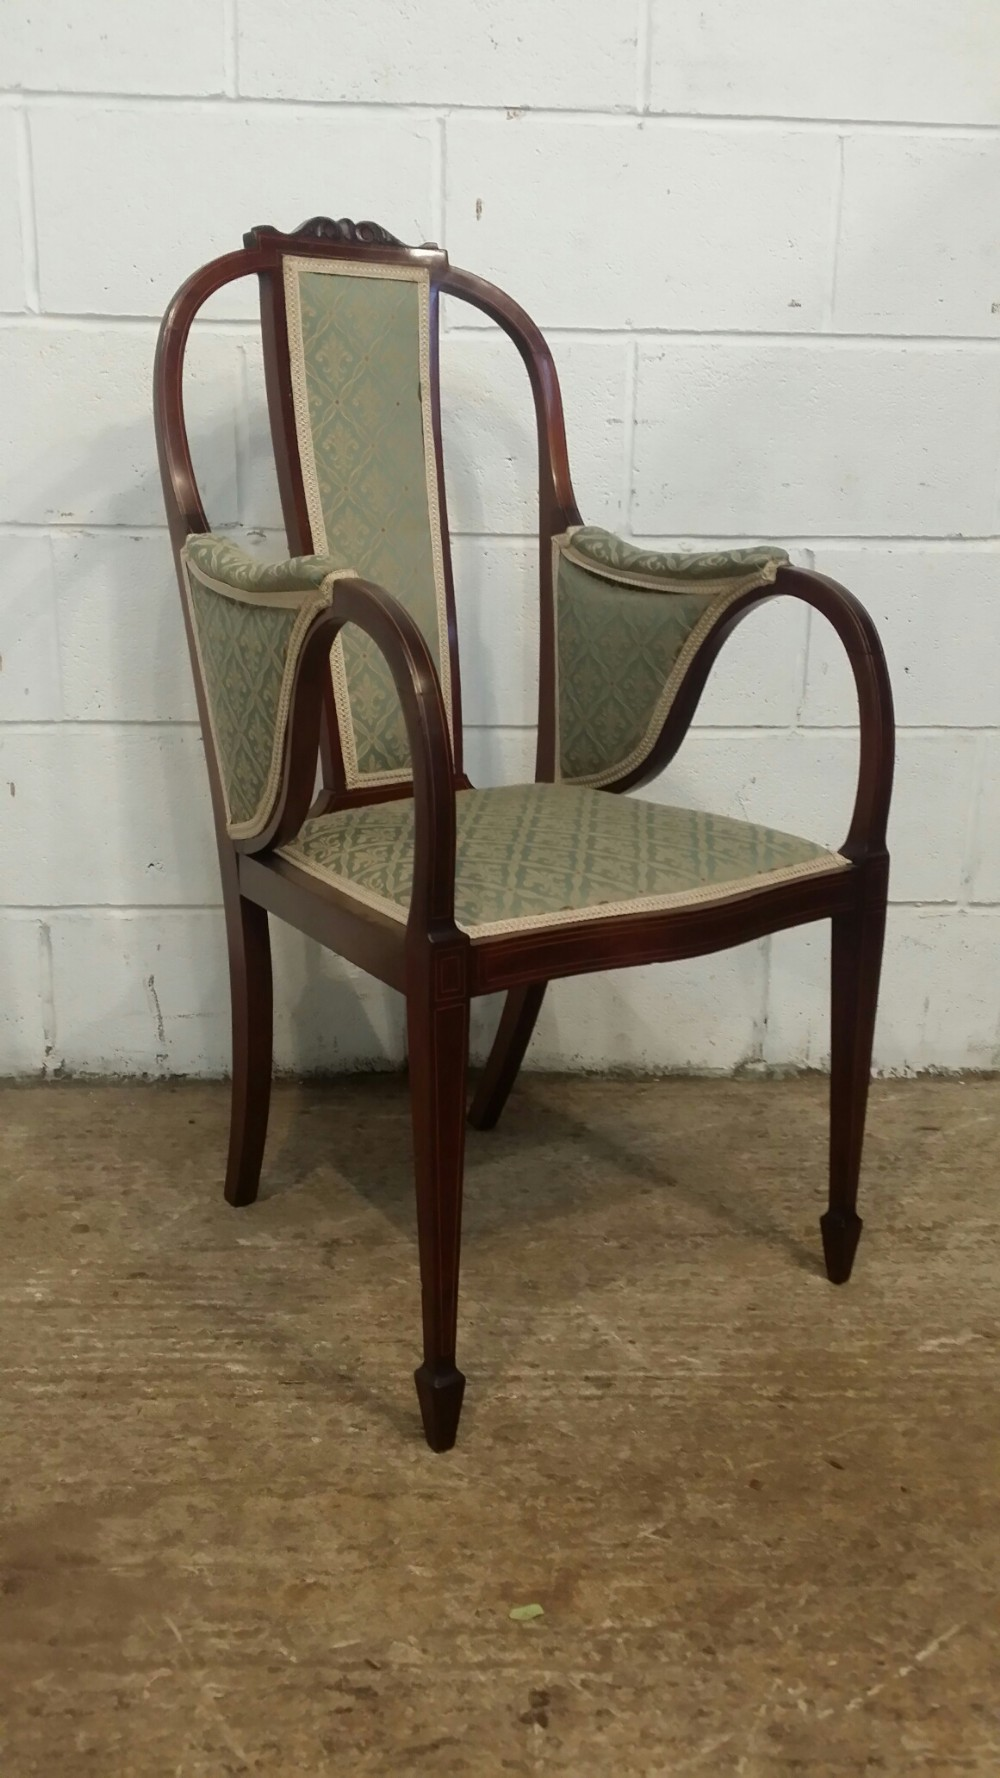 antique edwardian aesthetic mahogany library desk chair c1900